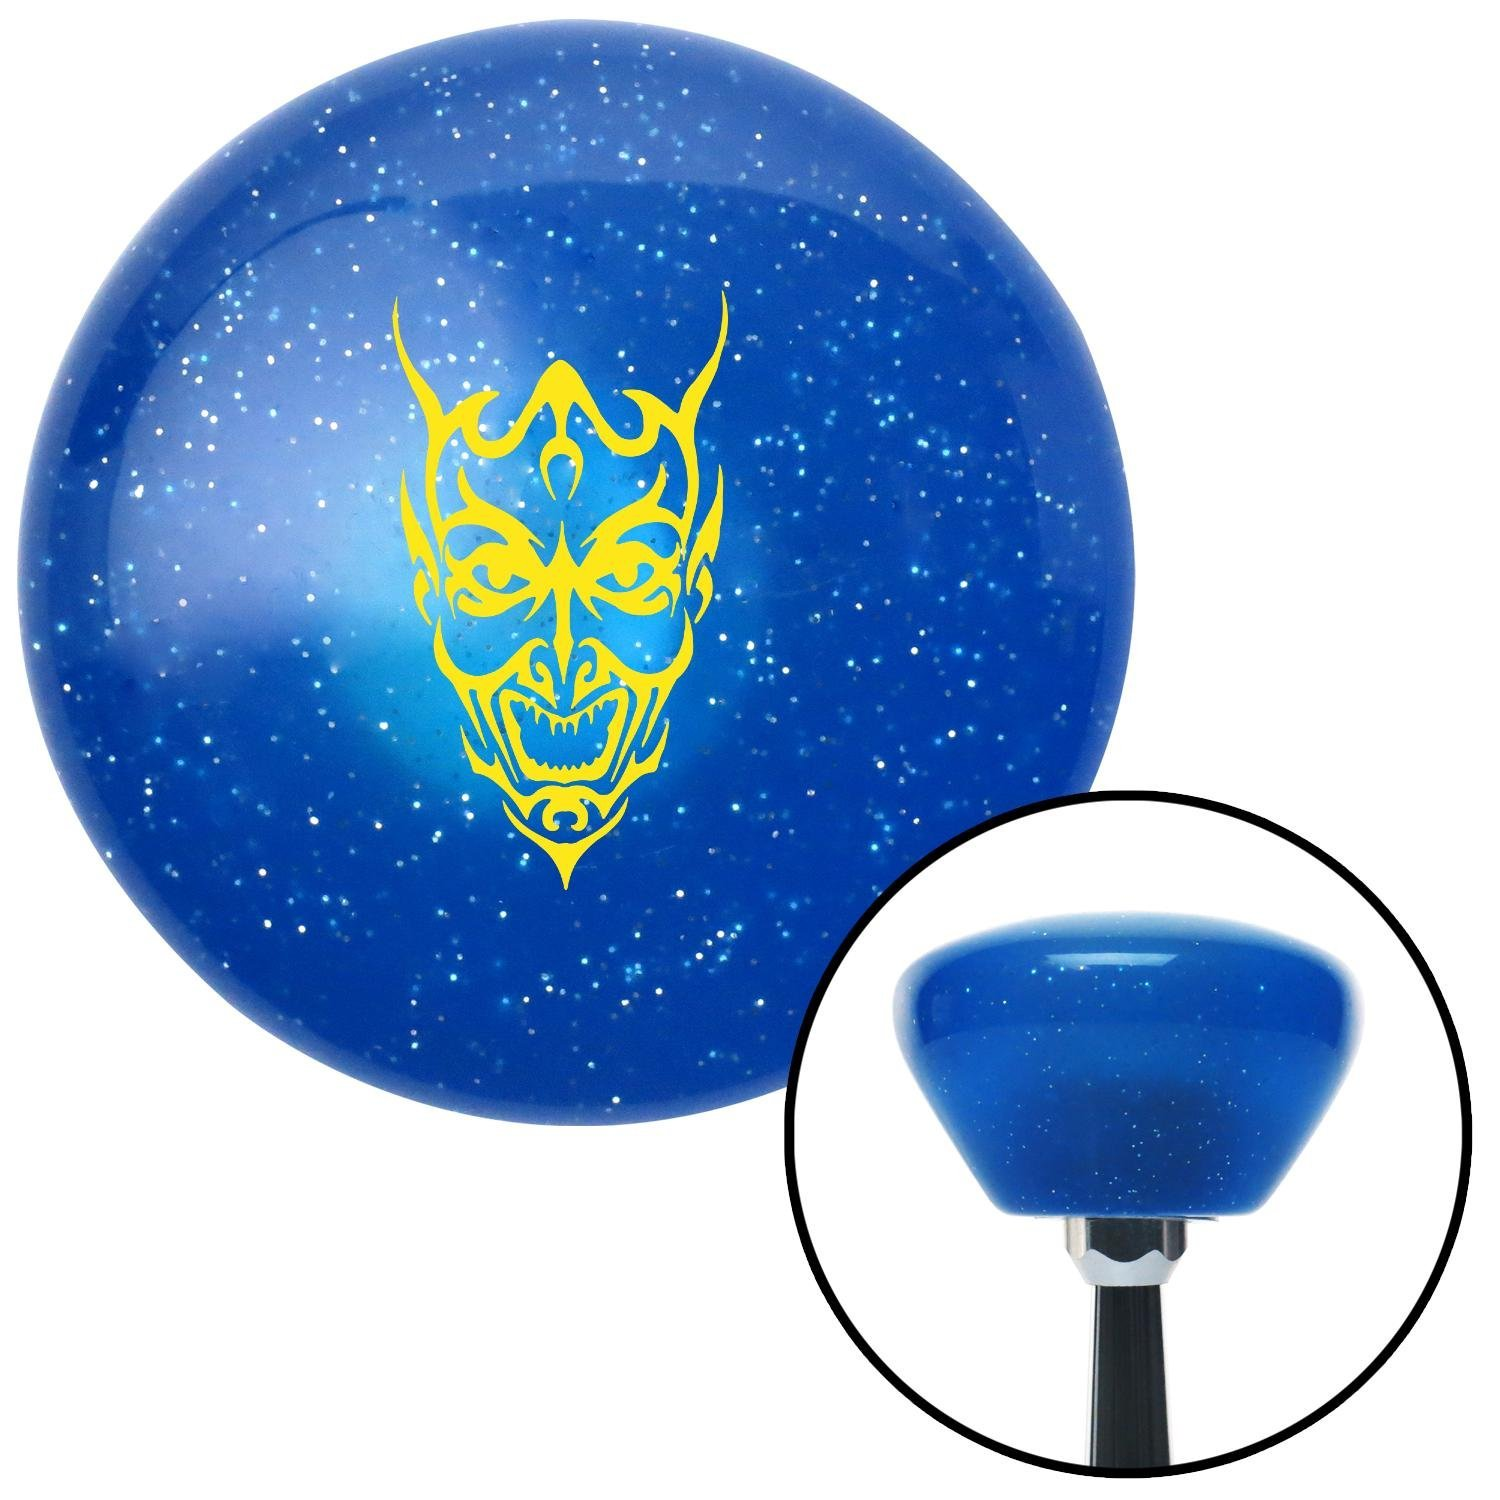 American Shifter 187118 Blue Retro Metal Flake Shift Knob with M16 x 1.5 Insert Yellow Abstract Devil Face